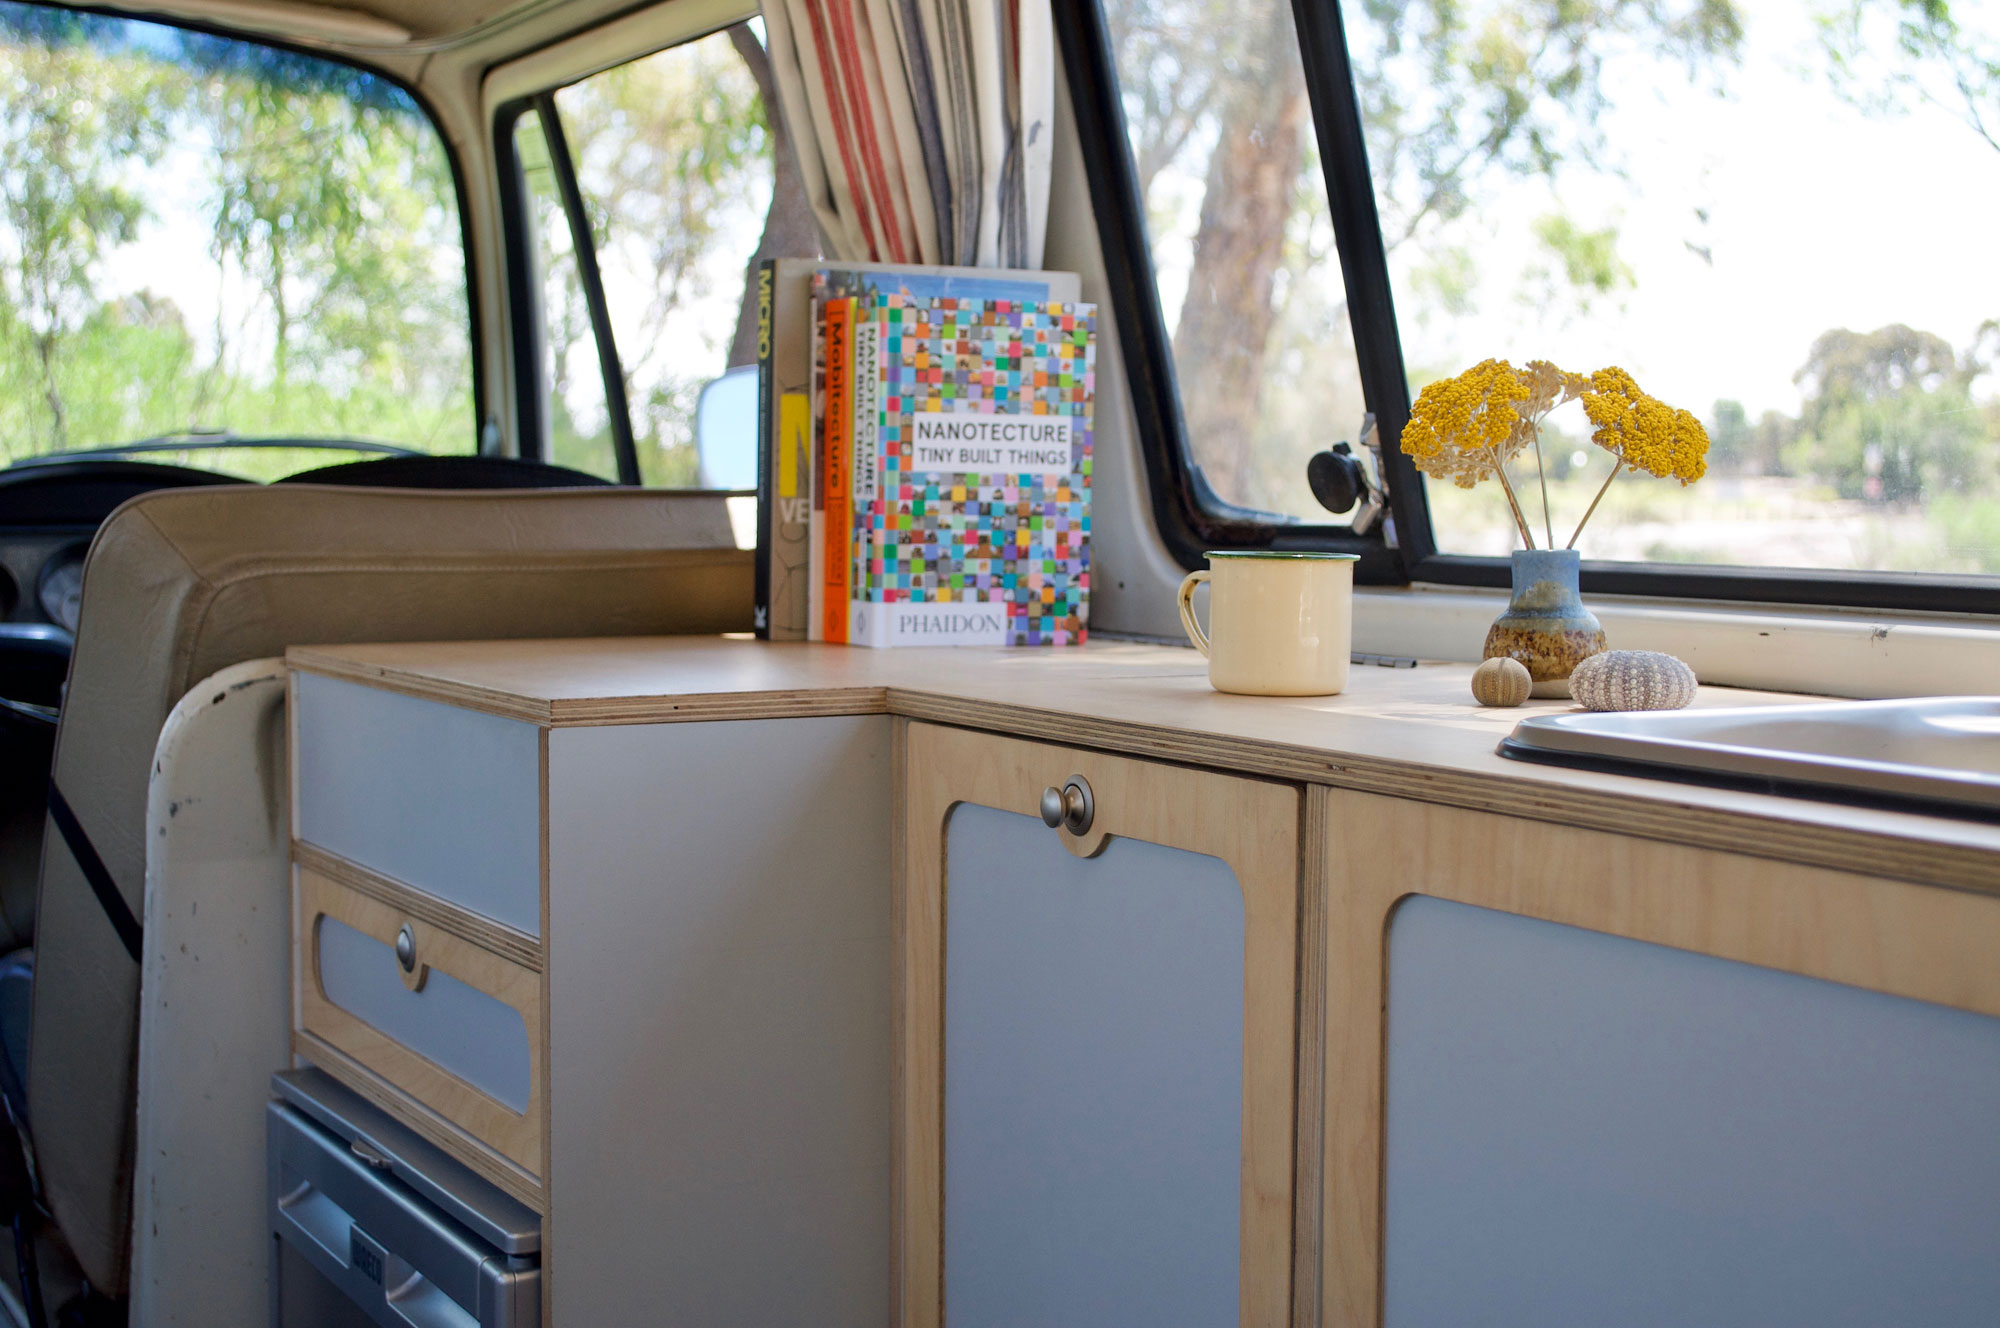 Vw Kombi Vans New Retro Flat Pack Diy Interior Kits The Interiors Addict